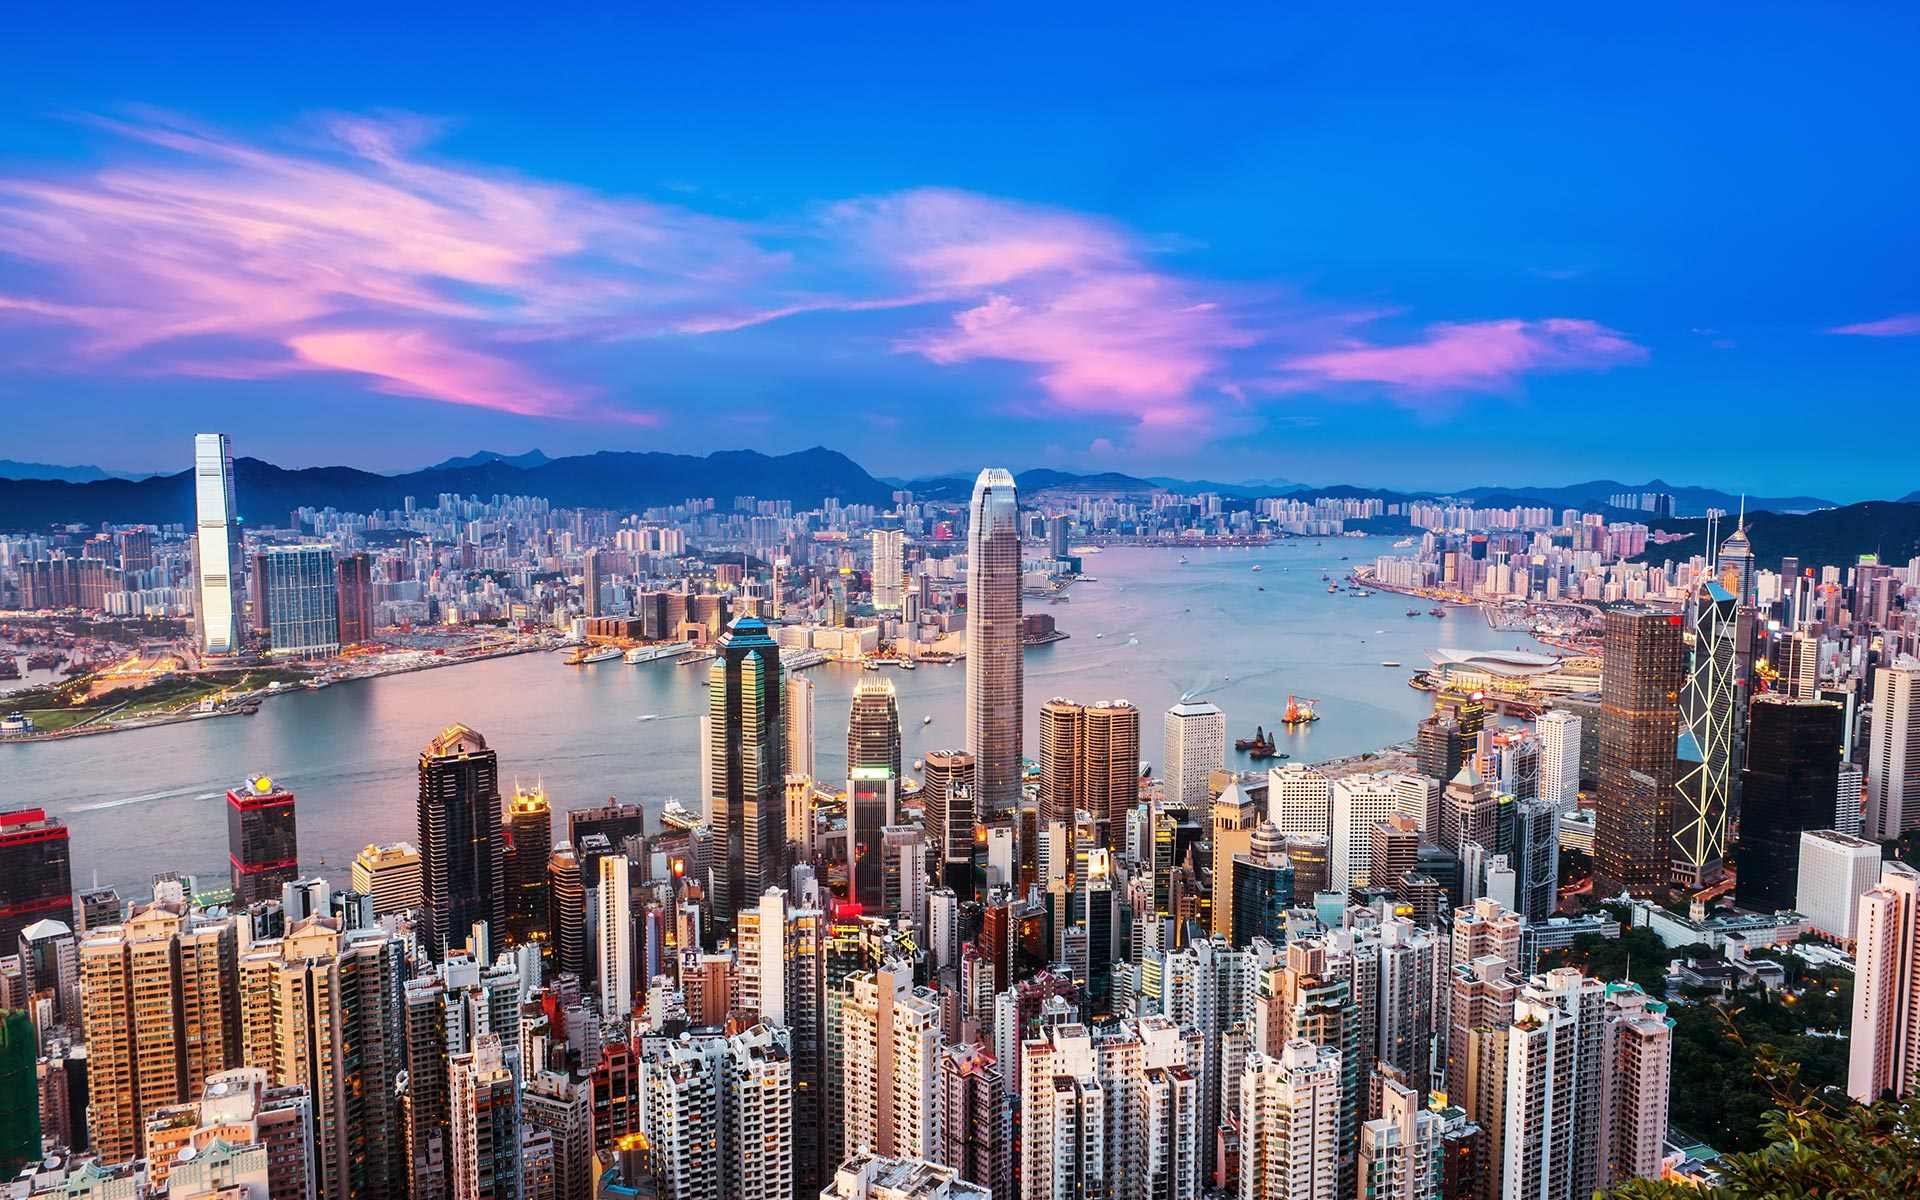 Hong Kong named world's most competitive economy